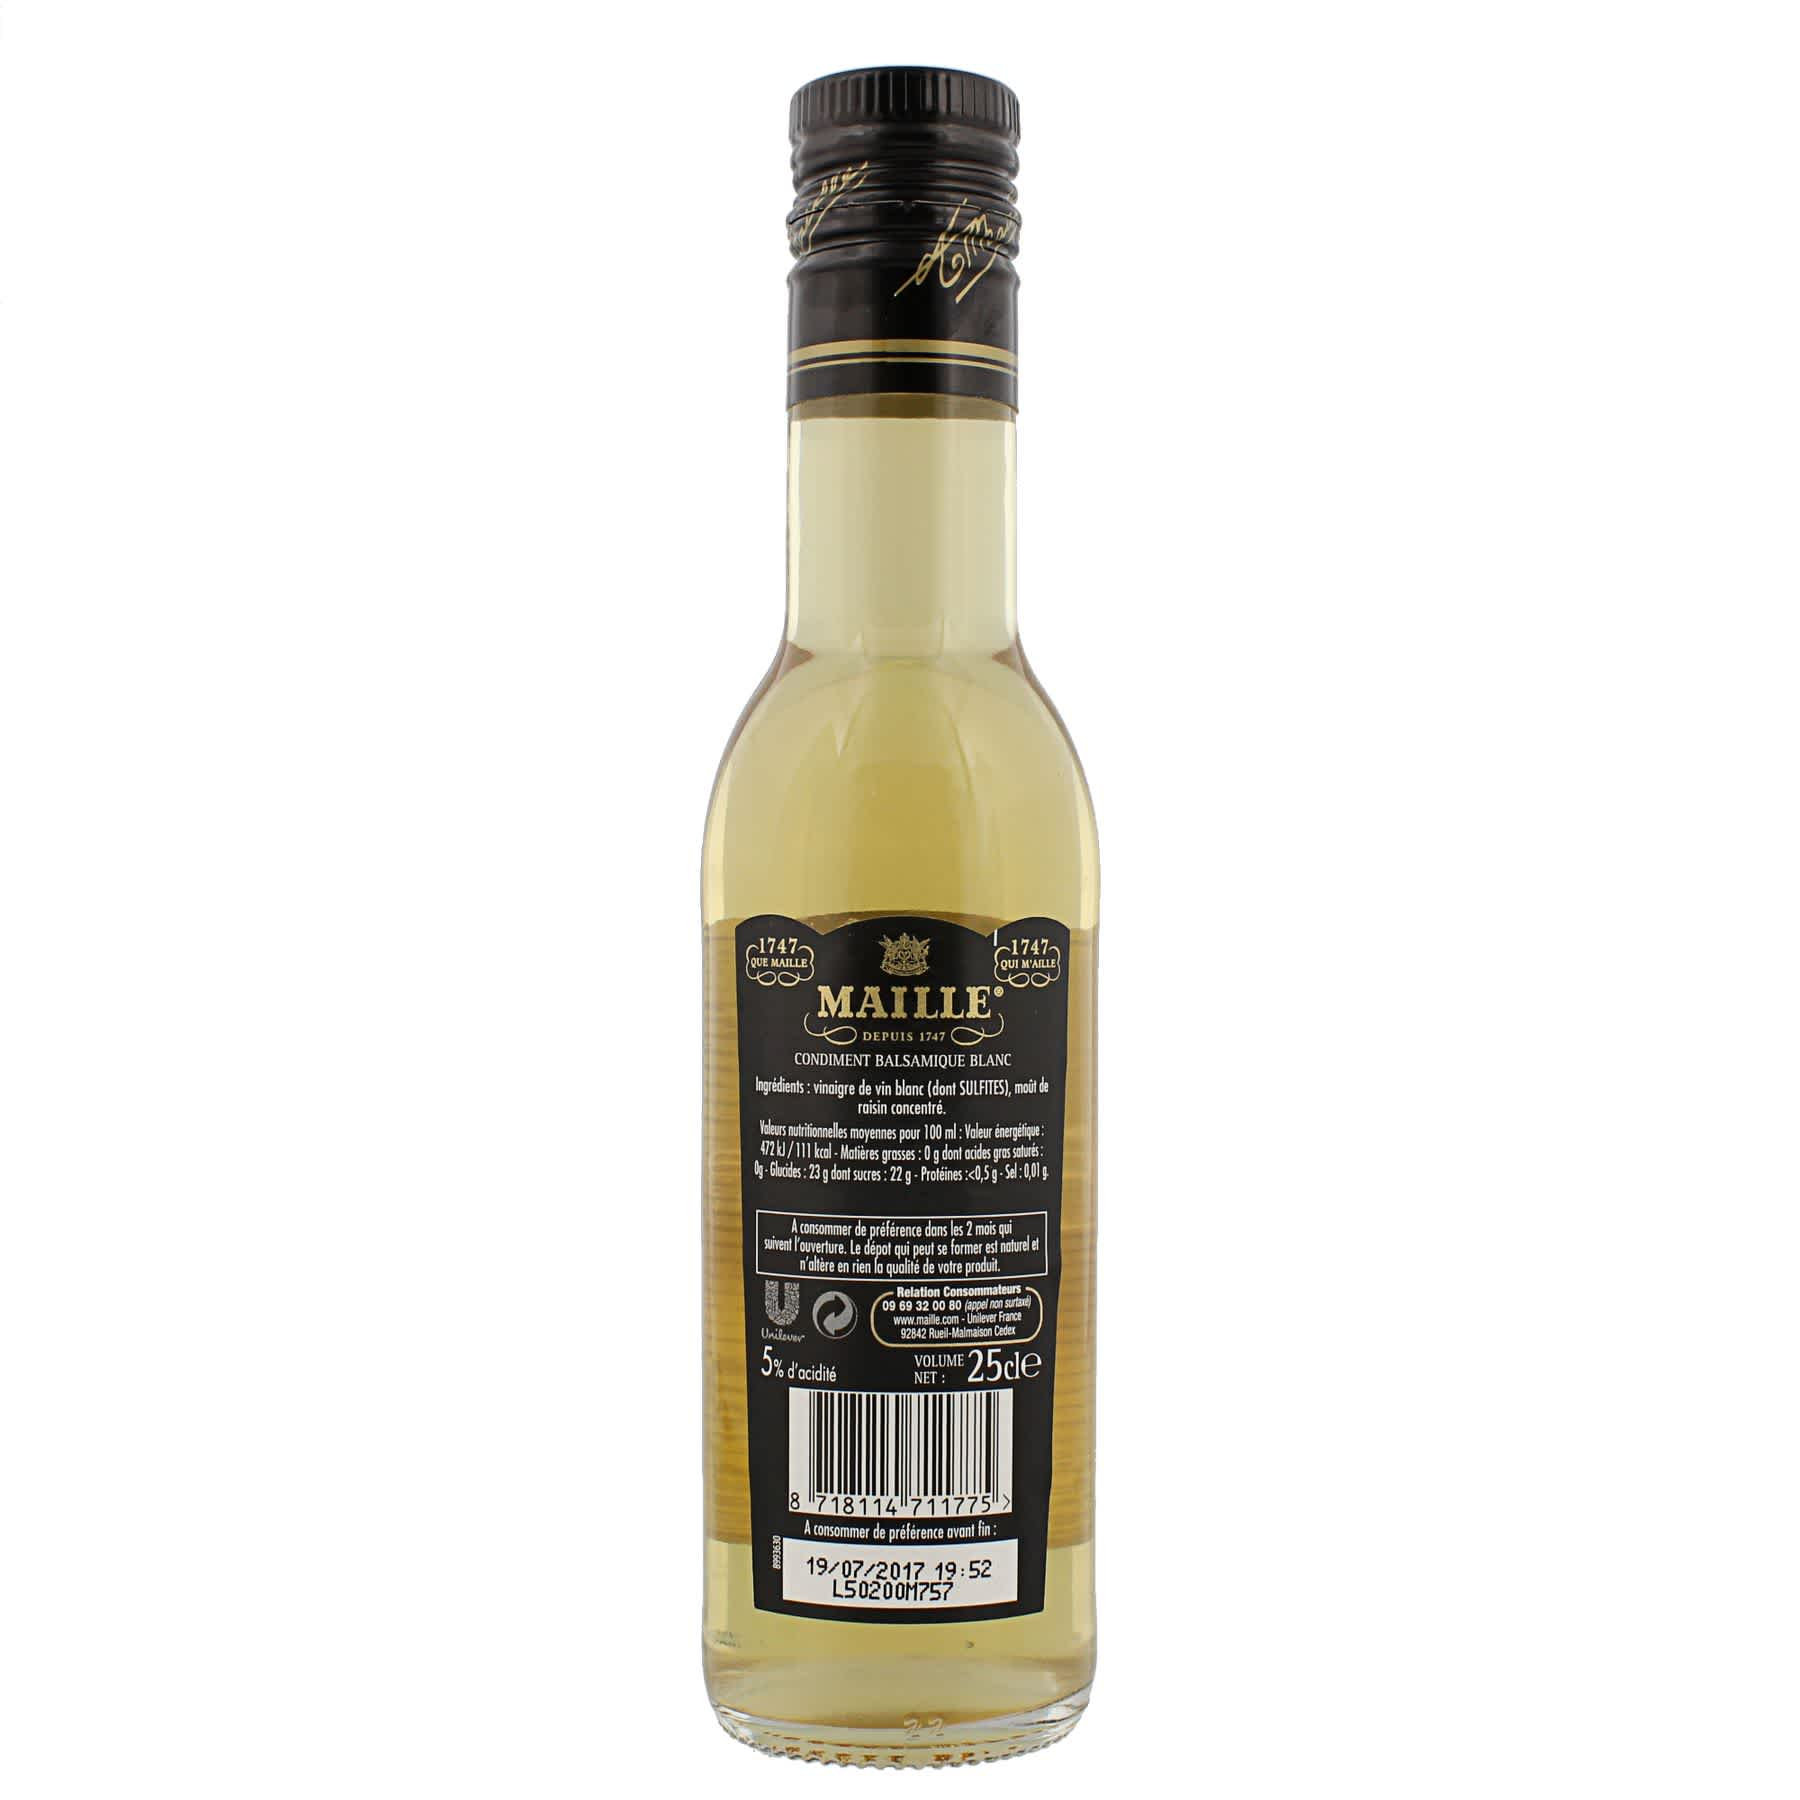 Maille - Condiment balsamique blanc, 250 ml, backend